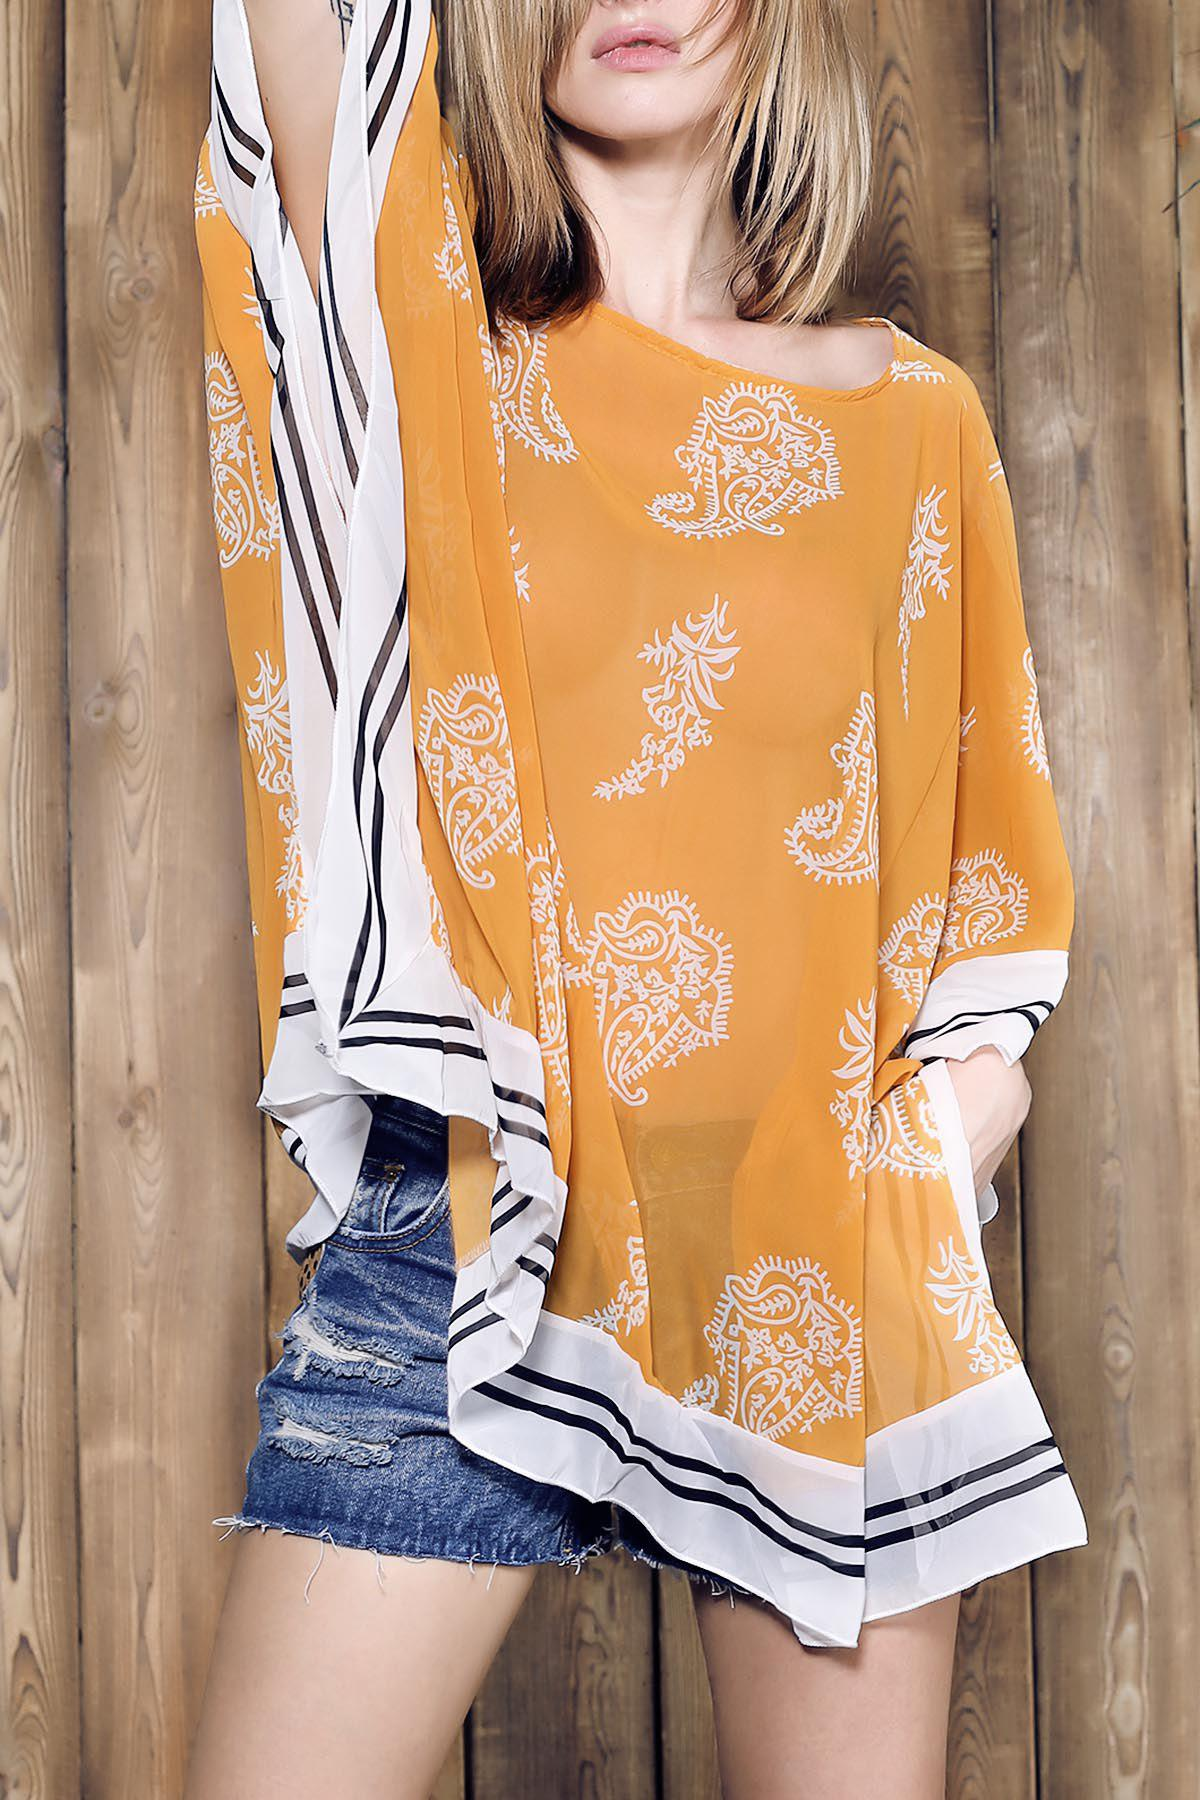 Stylish V-Neck 3/4 Sleeve Loose-Fitting Women's Chiffon Cover-Up